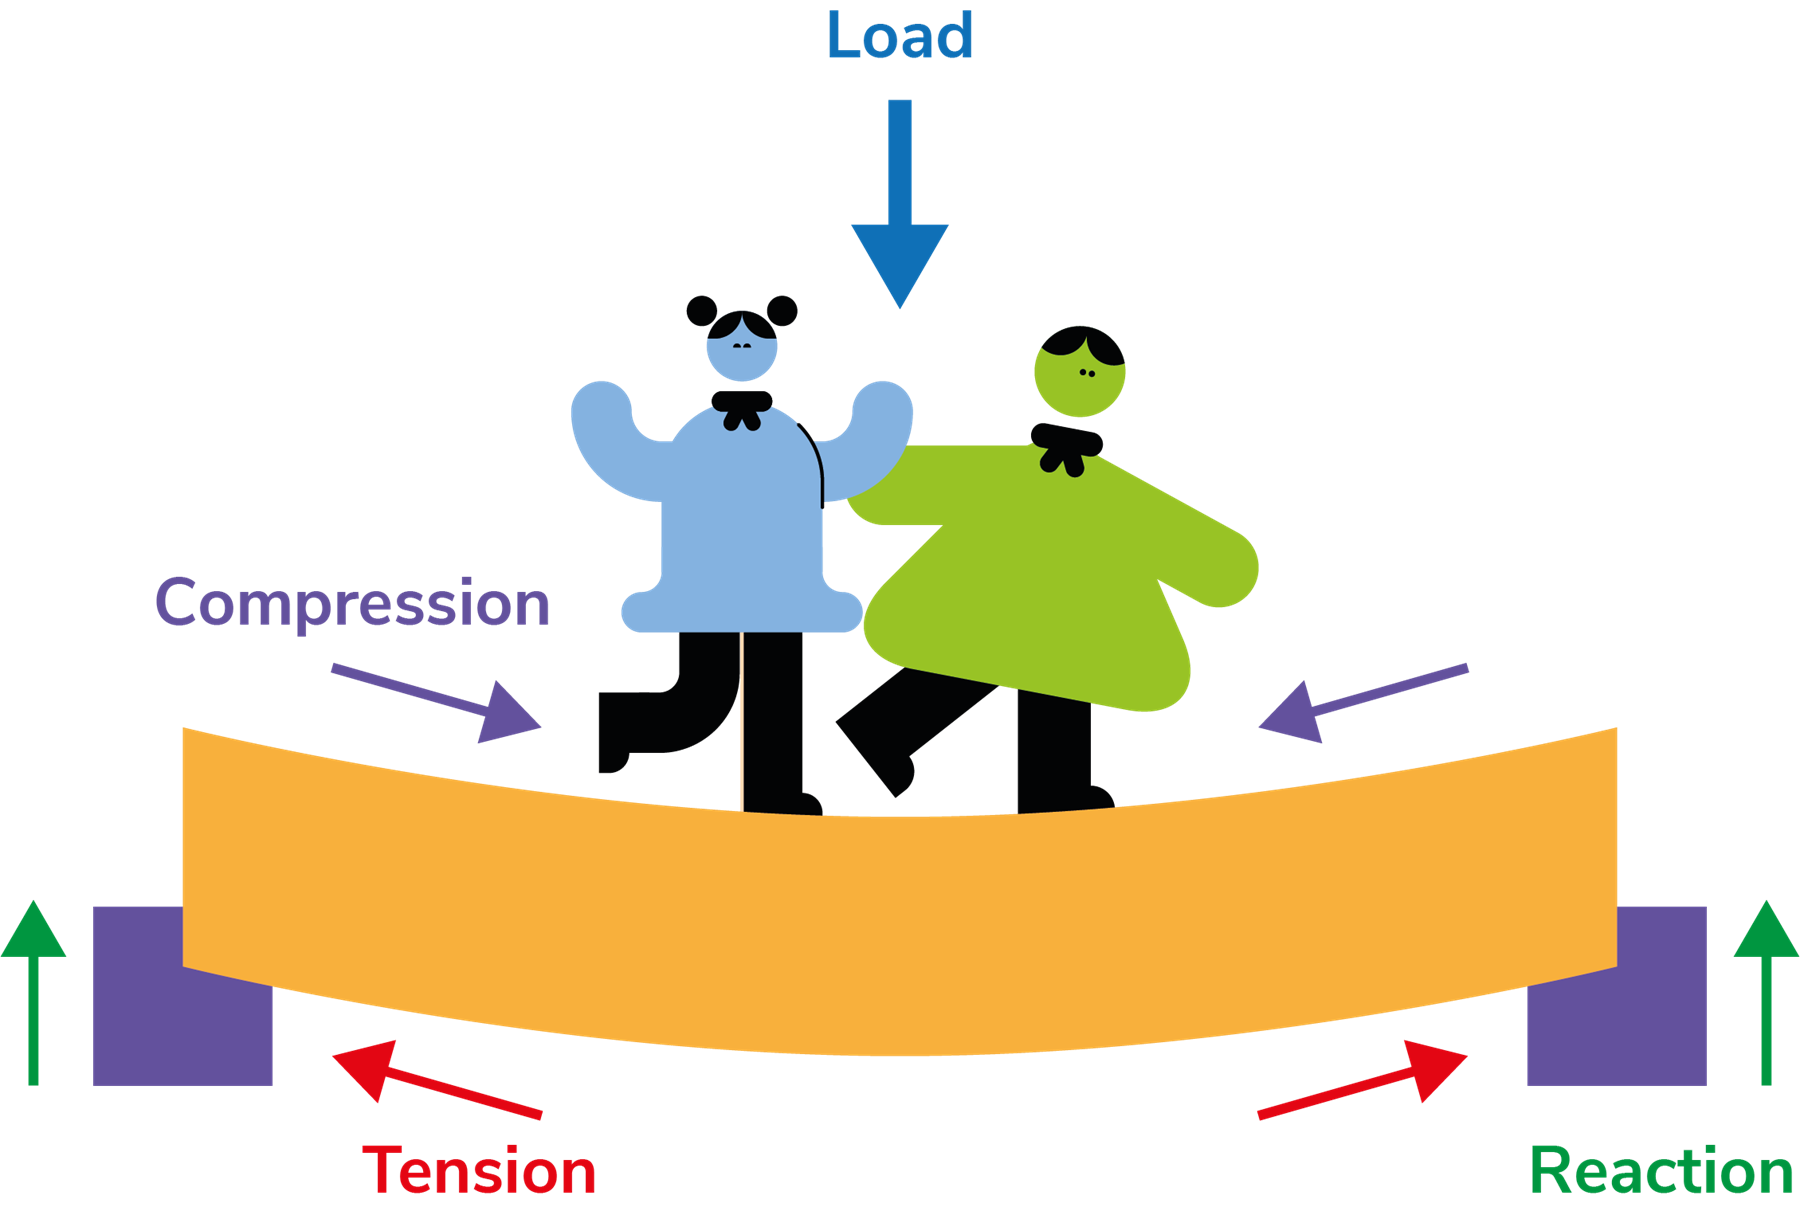 Two people standing on a bridge that's bowing under their weight. There are arrows showing the different forces acting, compression towards the centre of the bridge, tension away from the centre and the reaction force from the ground either side holding the bridge up.